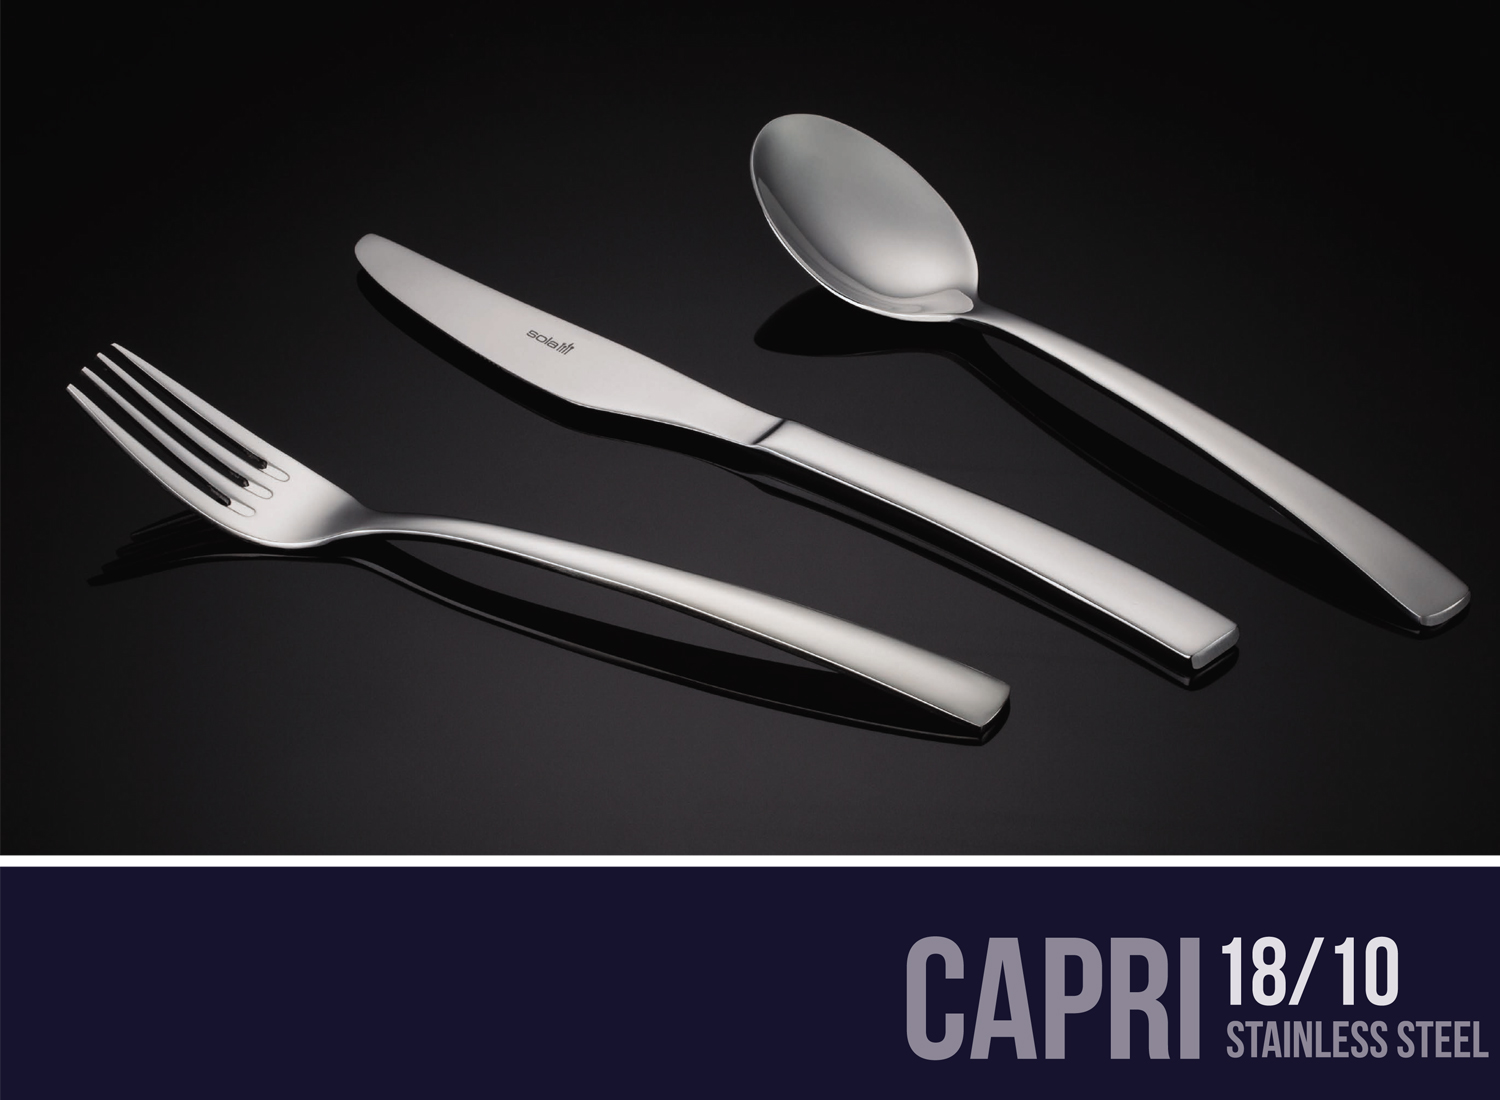 Capri Stainless Steel